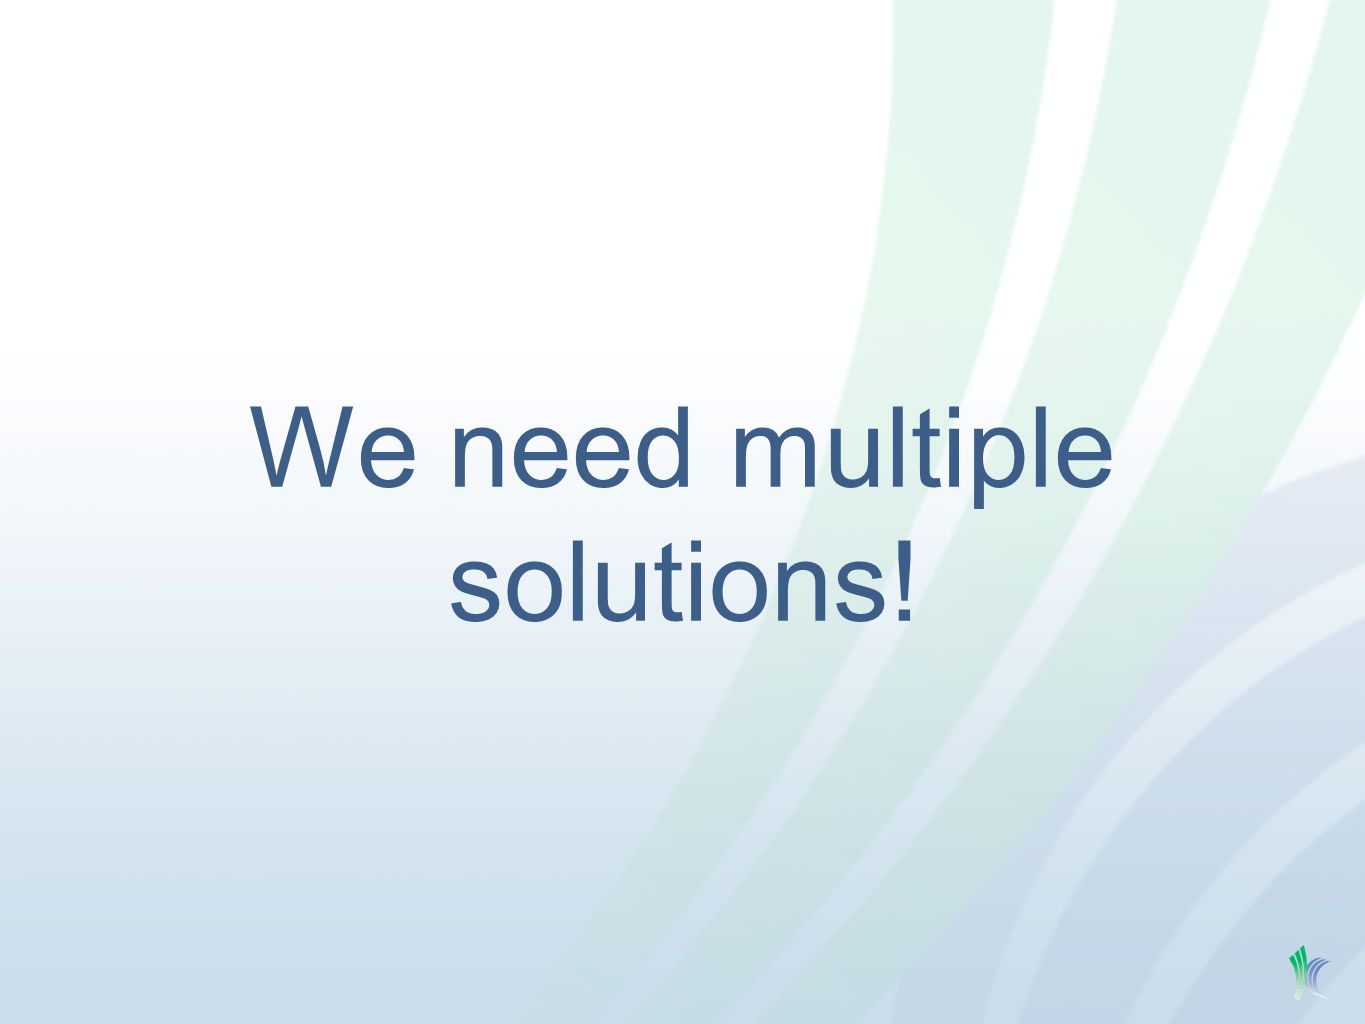 We need multiple solutions!